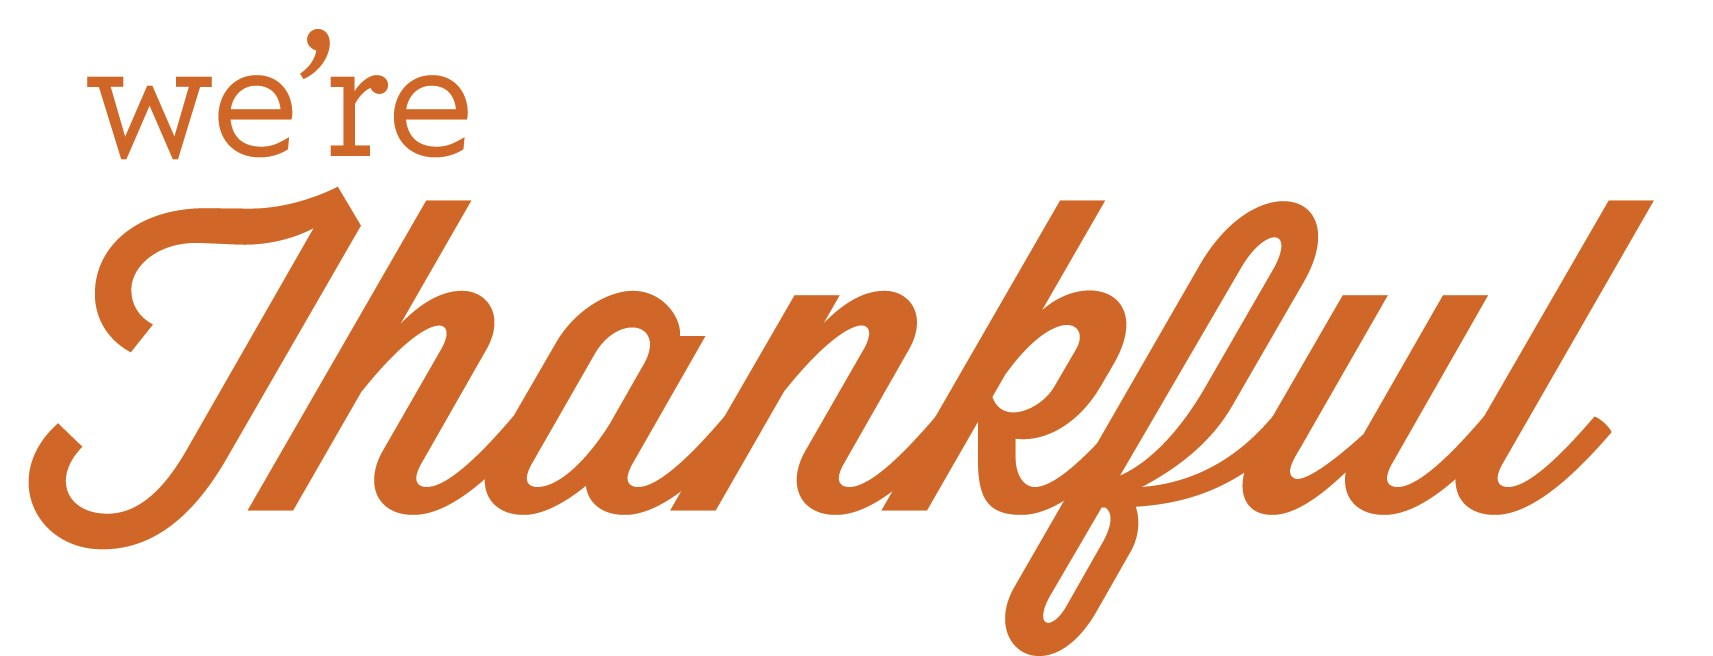 Be thankful clipart free banner black and white library Thankful clipart free 2 » Clipart Portal banner black and white library